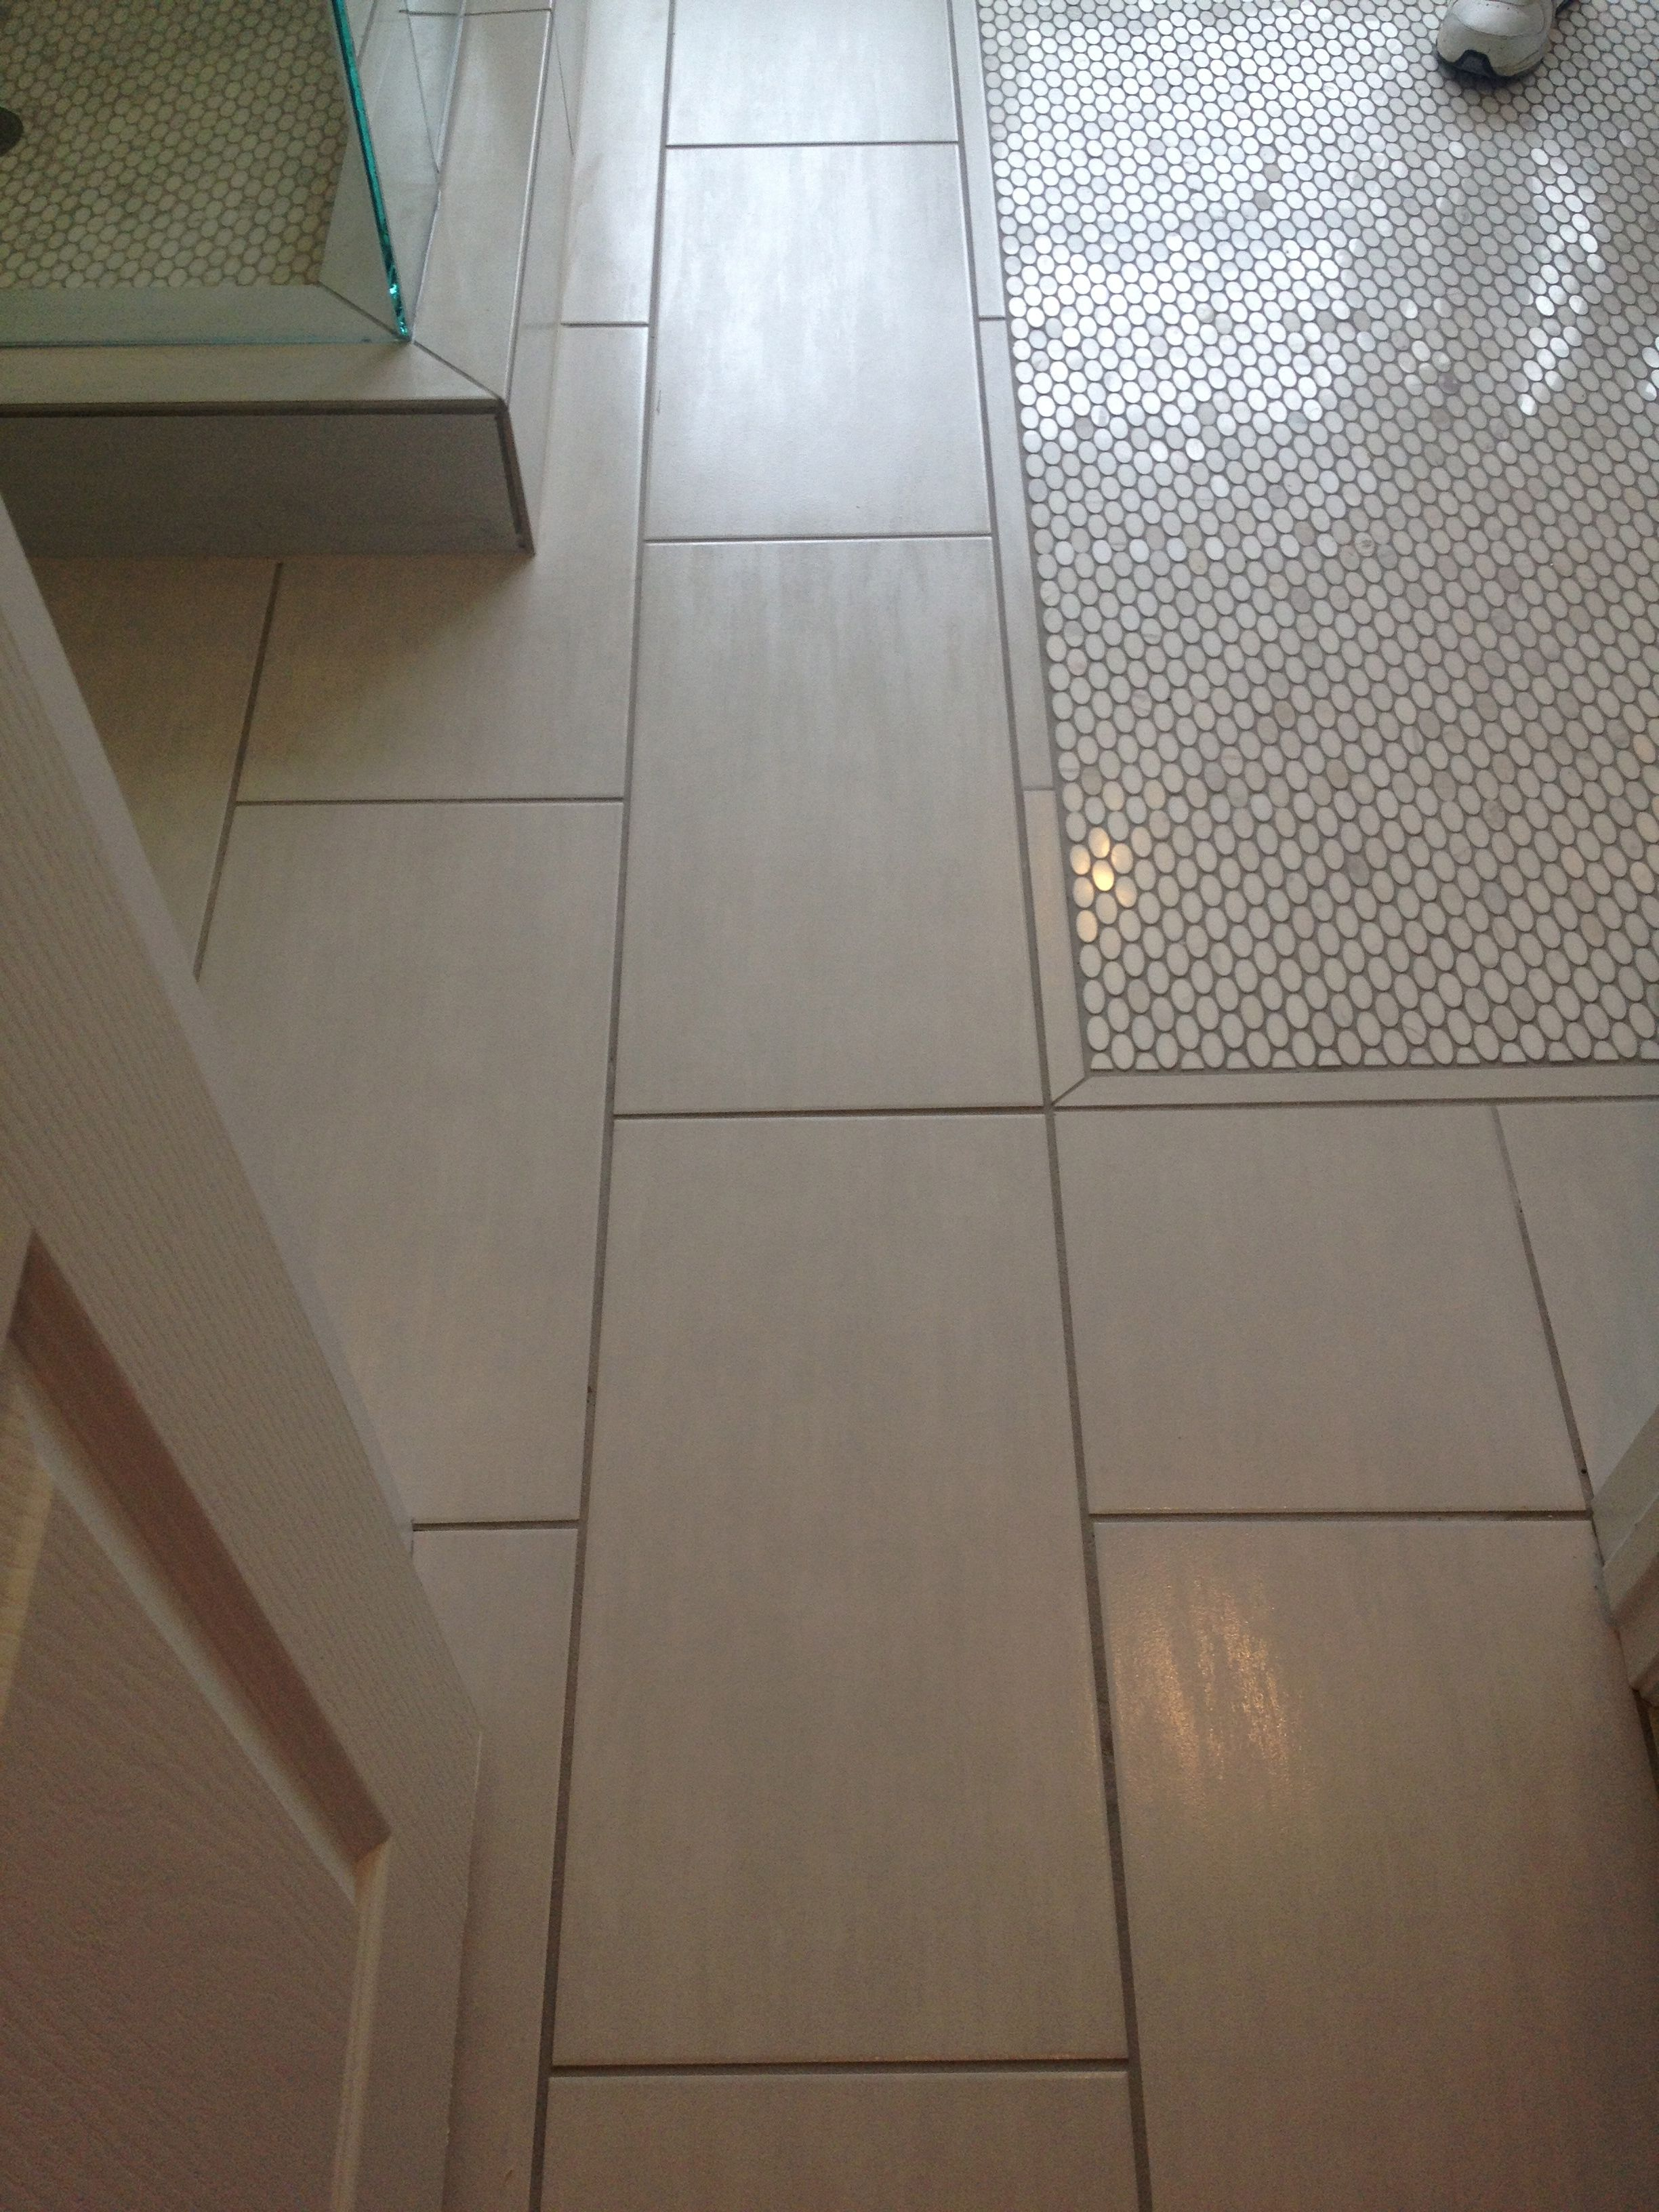 12x24 Off White Tile With Carrara Marble Oval Penny Tile Inlay Dream Bath Penny Tile Carrara Tiles